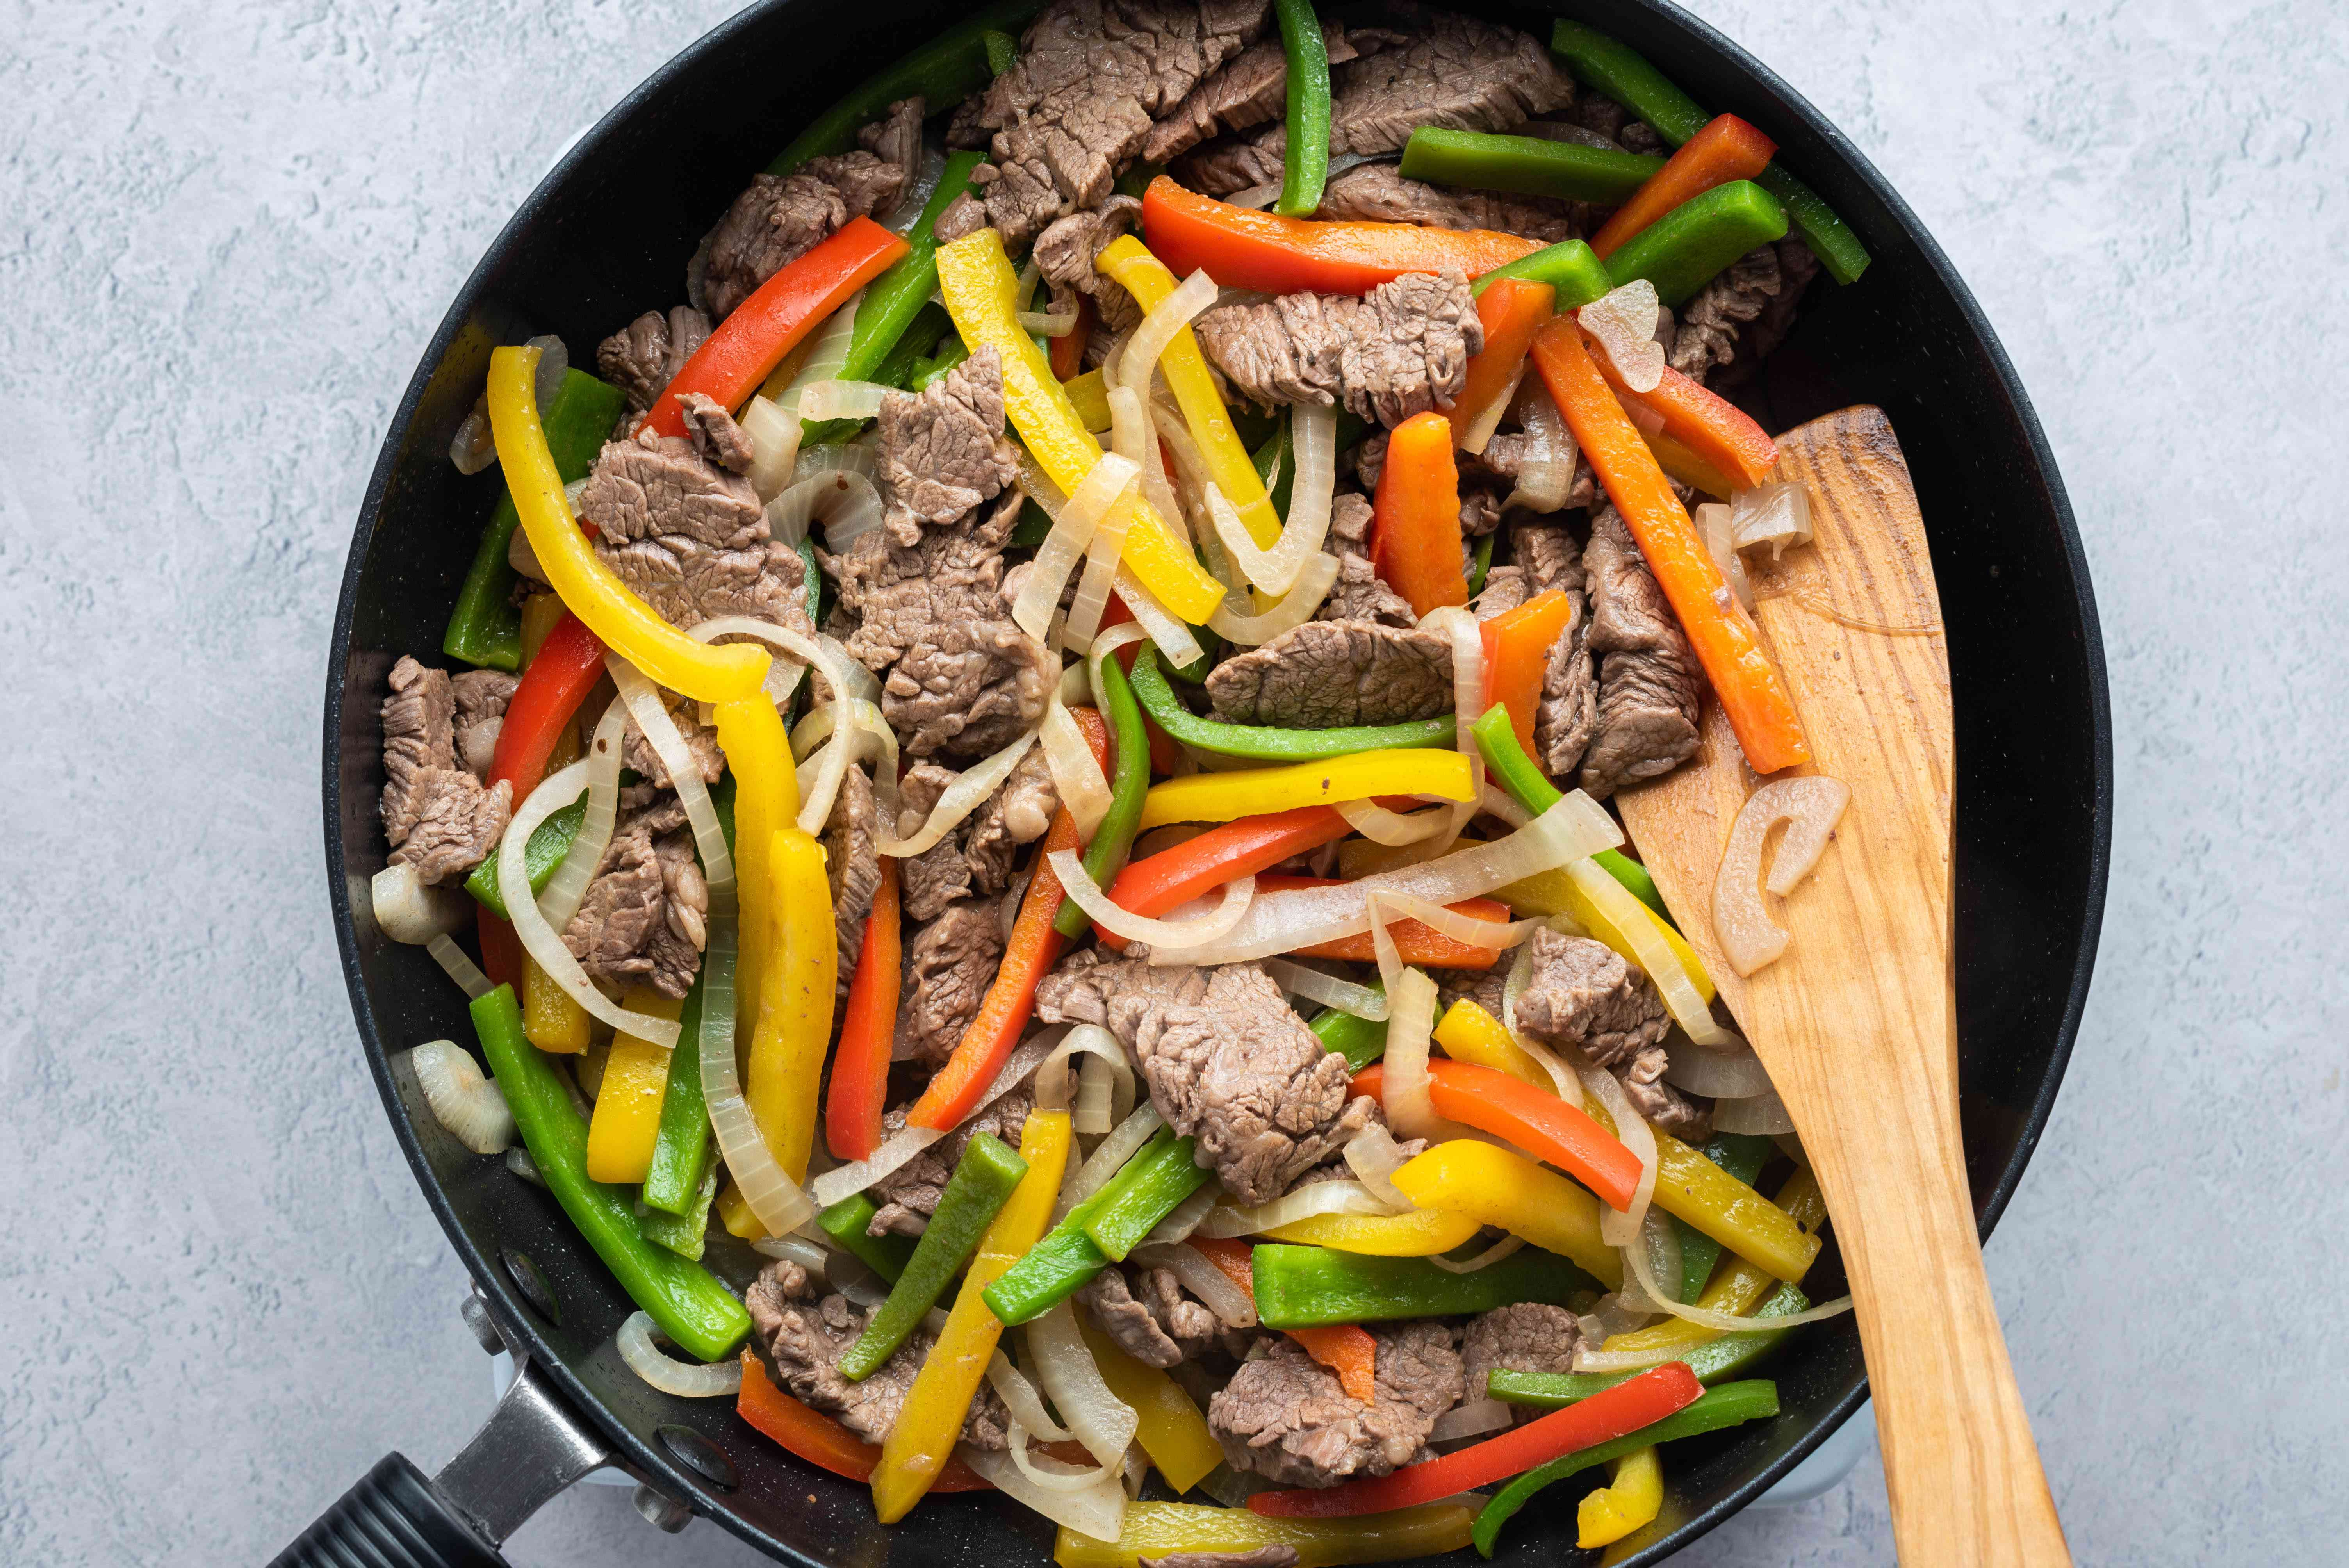 Cooked meat and vegetables in a pan